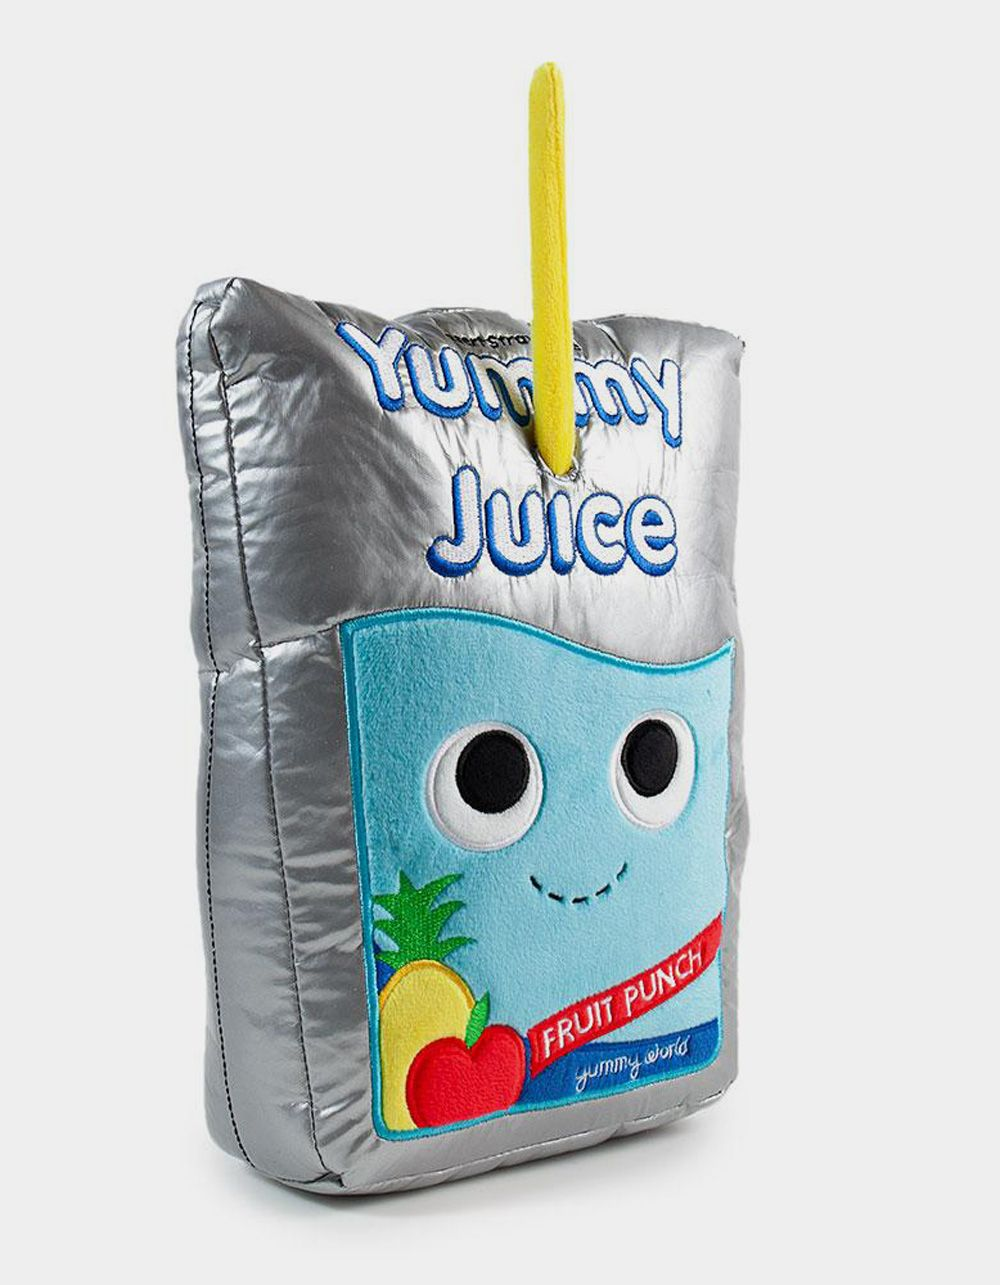 KIDROBOT Yummy World Jake The Juice Pouch Plush